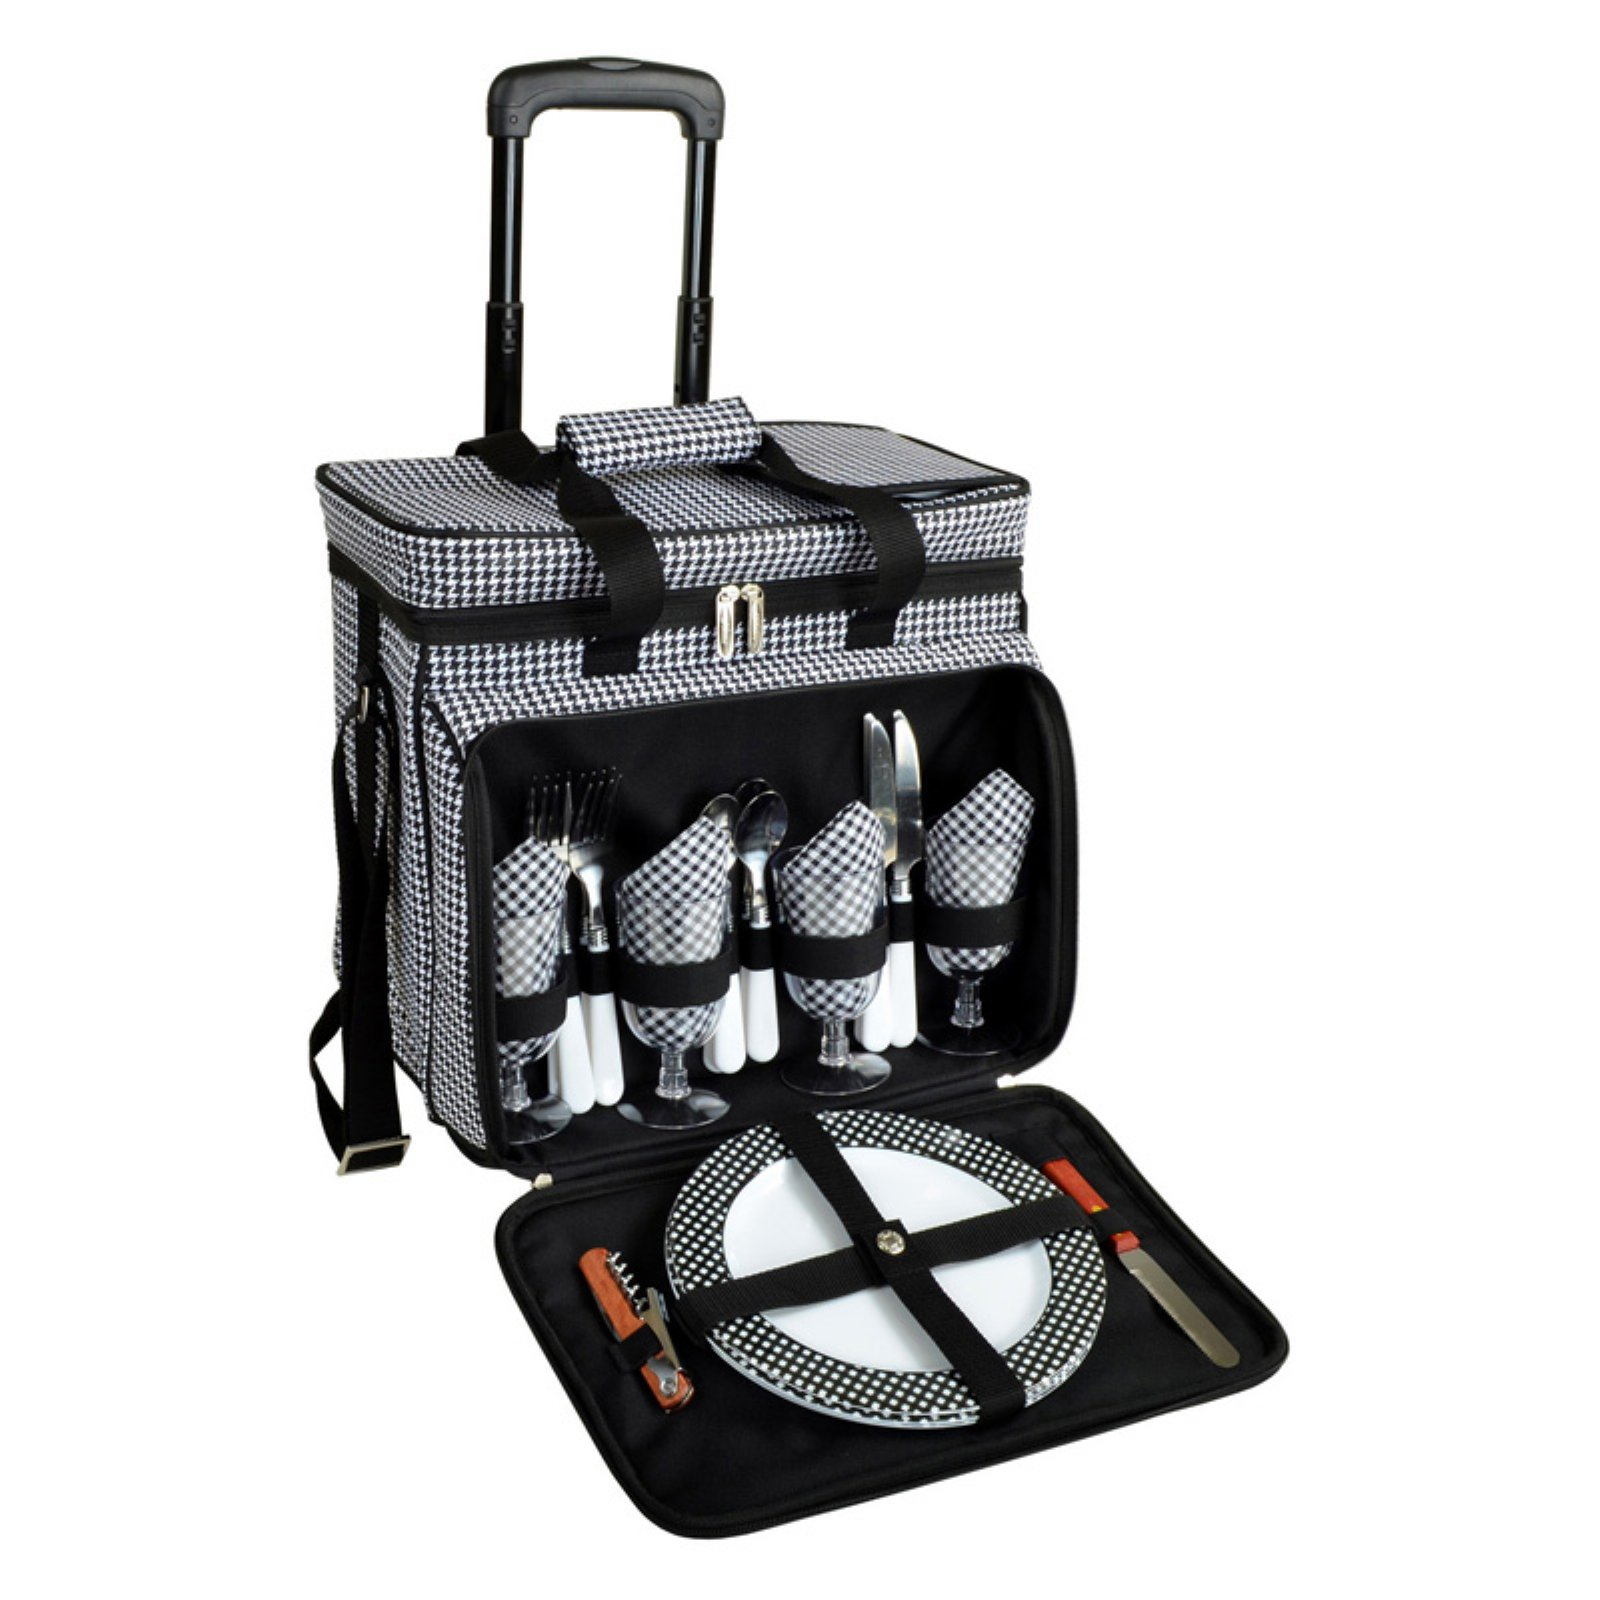 Picnic At Ascot Houndstooth Picnic Wheeled Cooler for Four